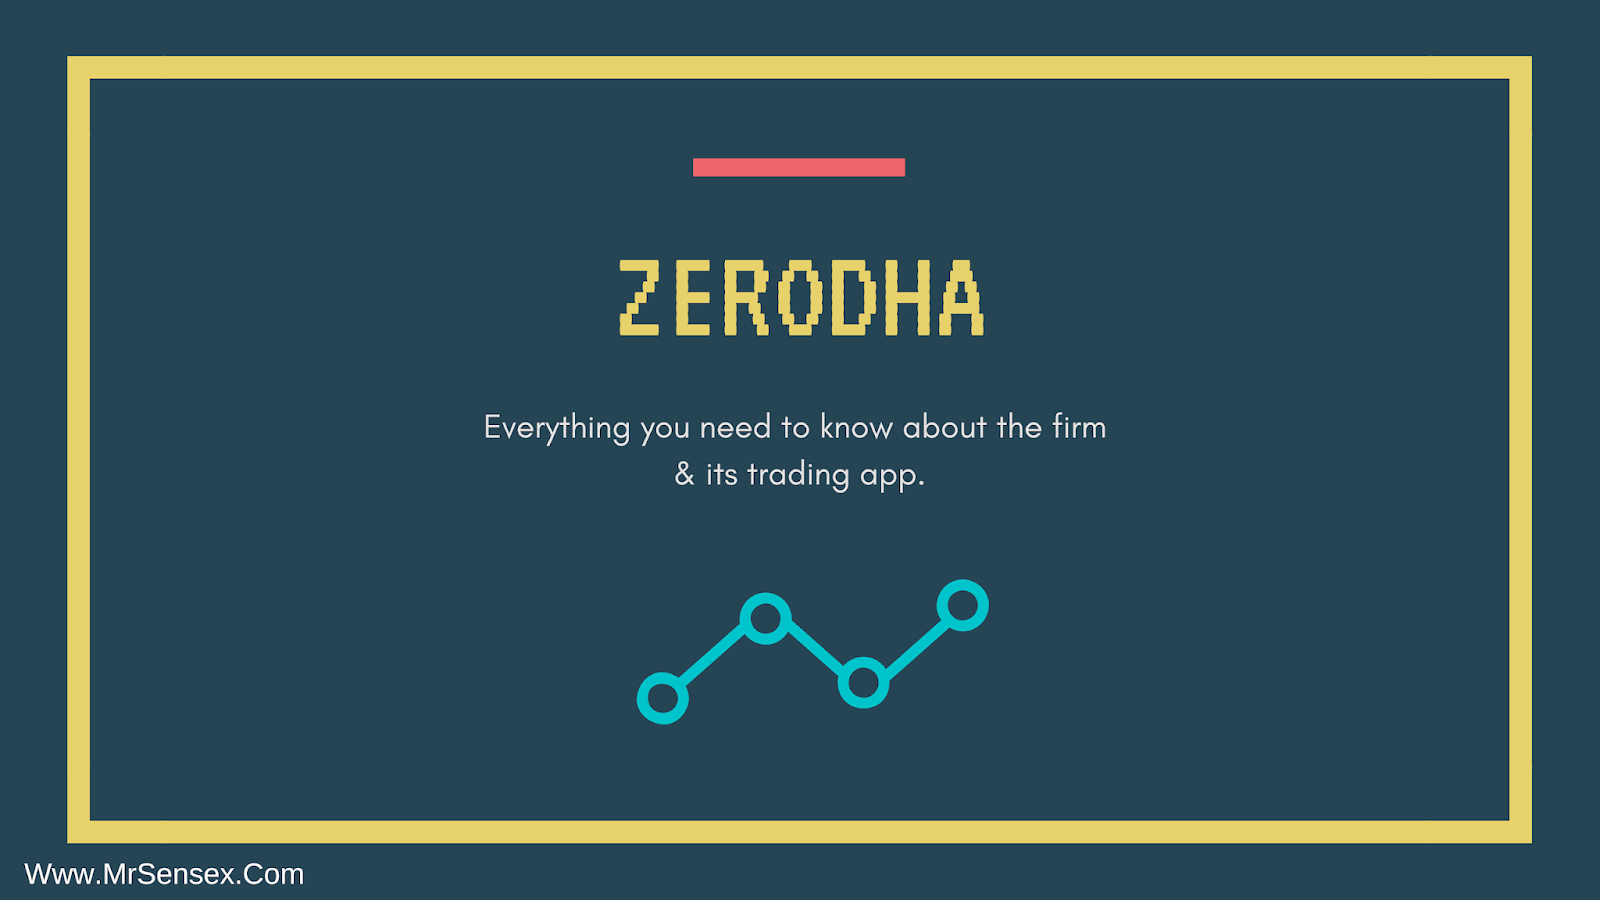 Zerodha: Everything you need to know about its trading